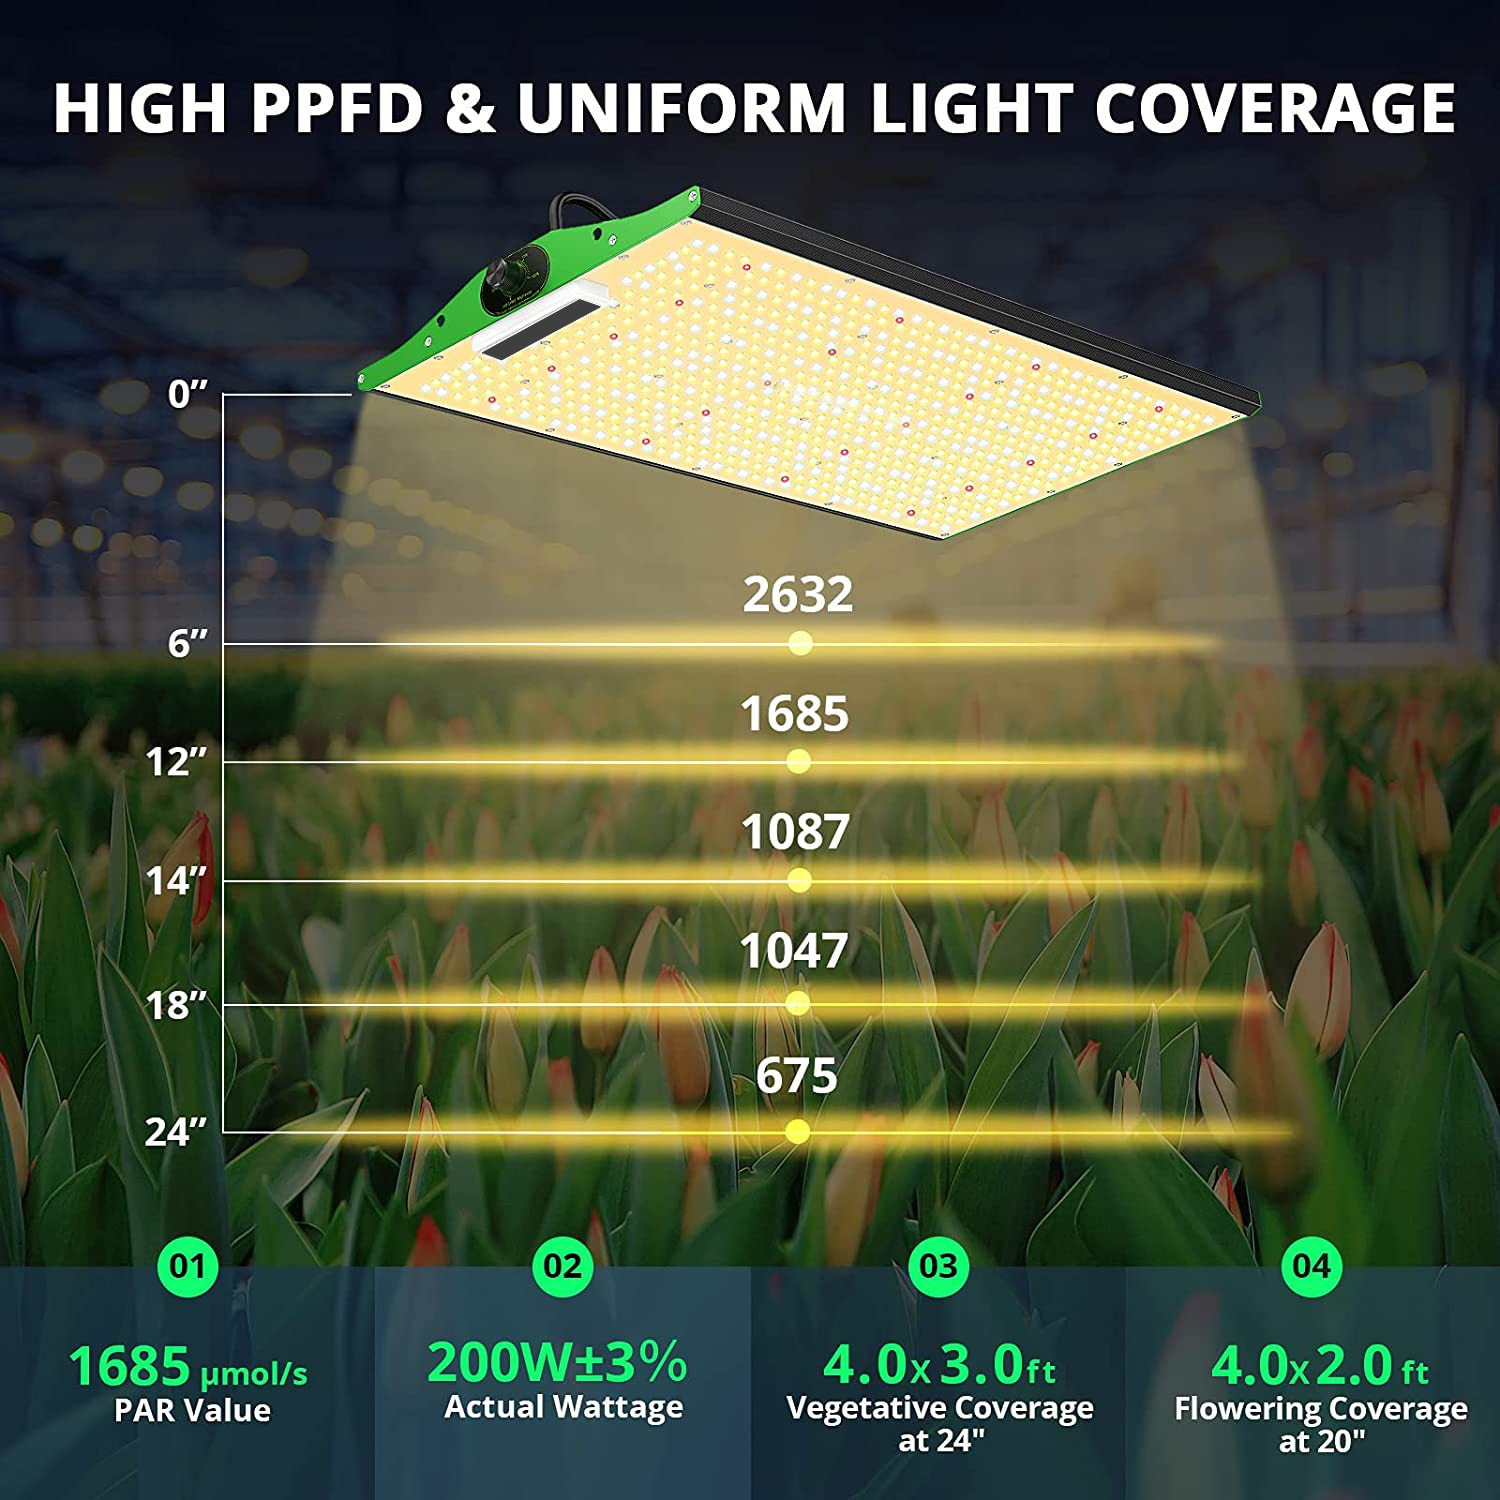 LED Grow Light, ZFR P2000 LED Grow Light 4x2ft Coverage Full Spectrum LED Grow Lights with SAMSUNG LM301B (Includes IR), D enlarge